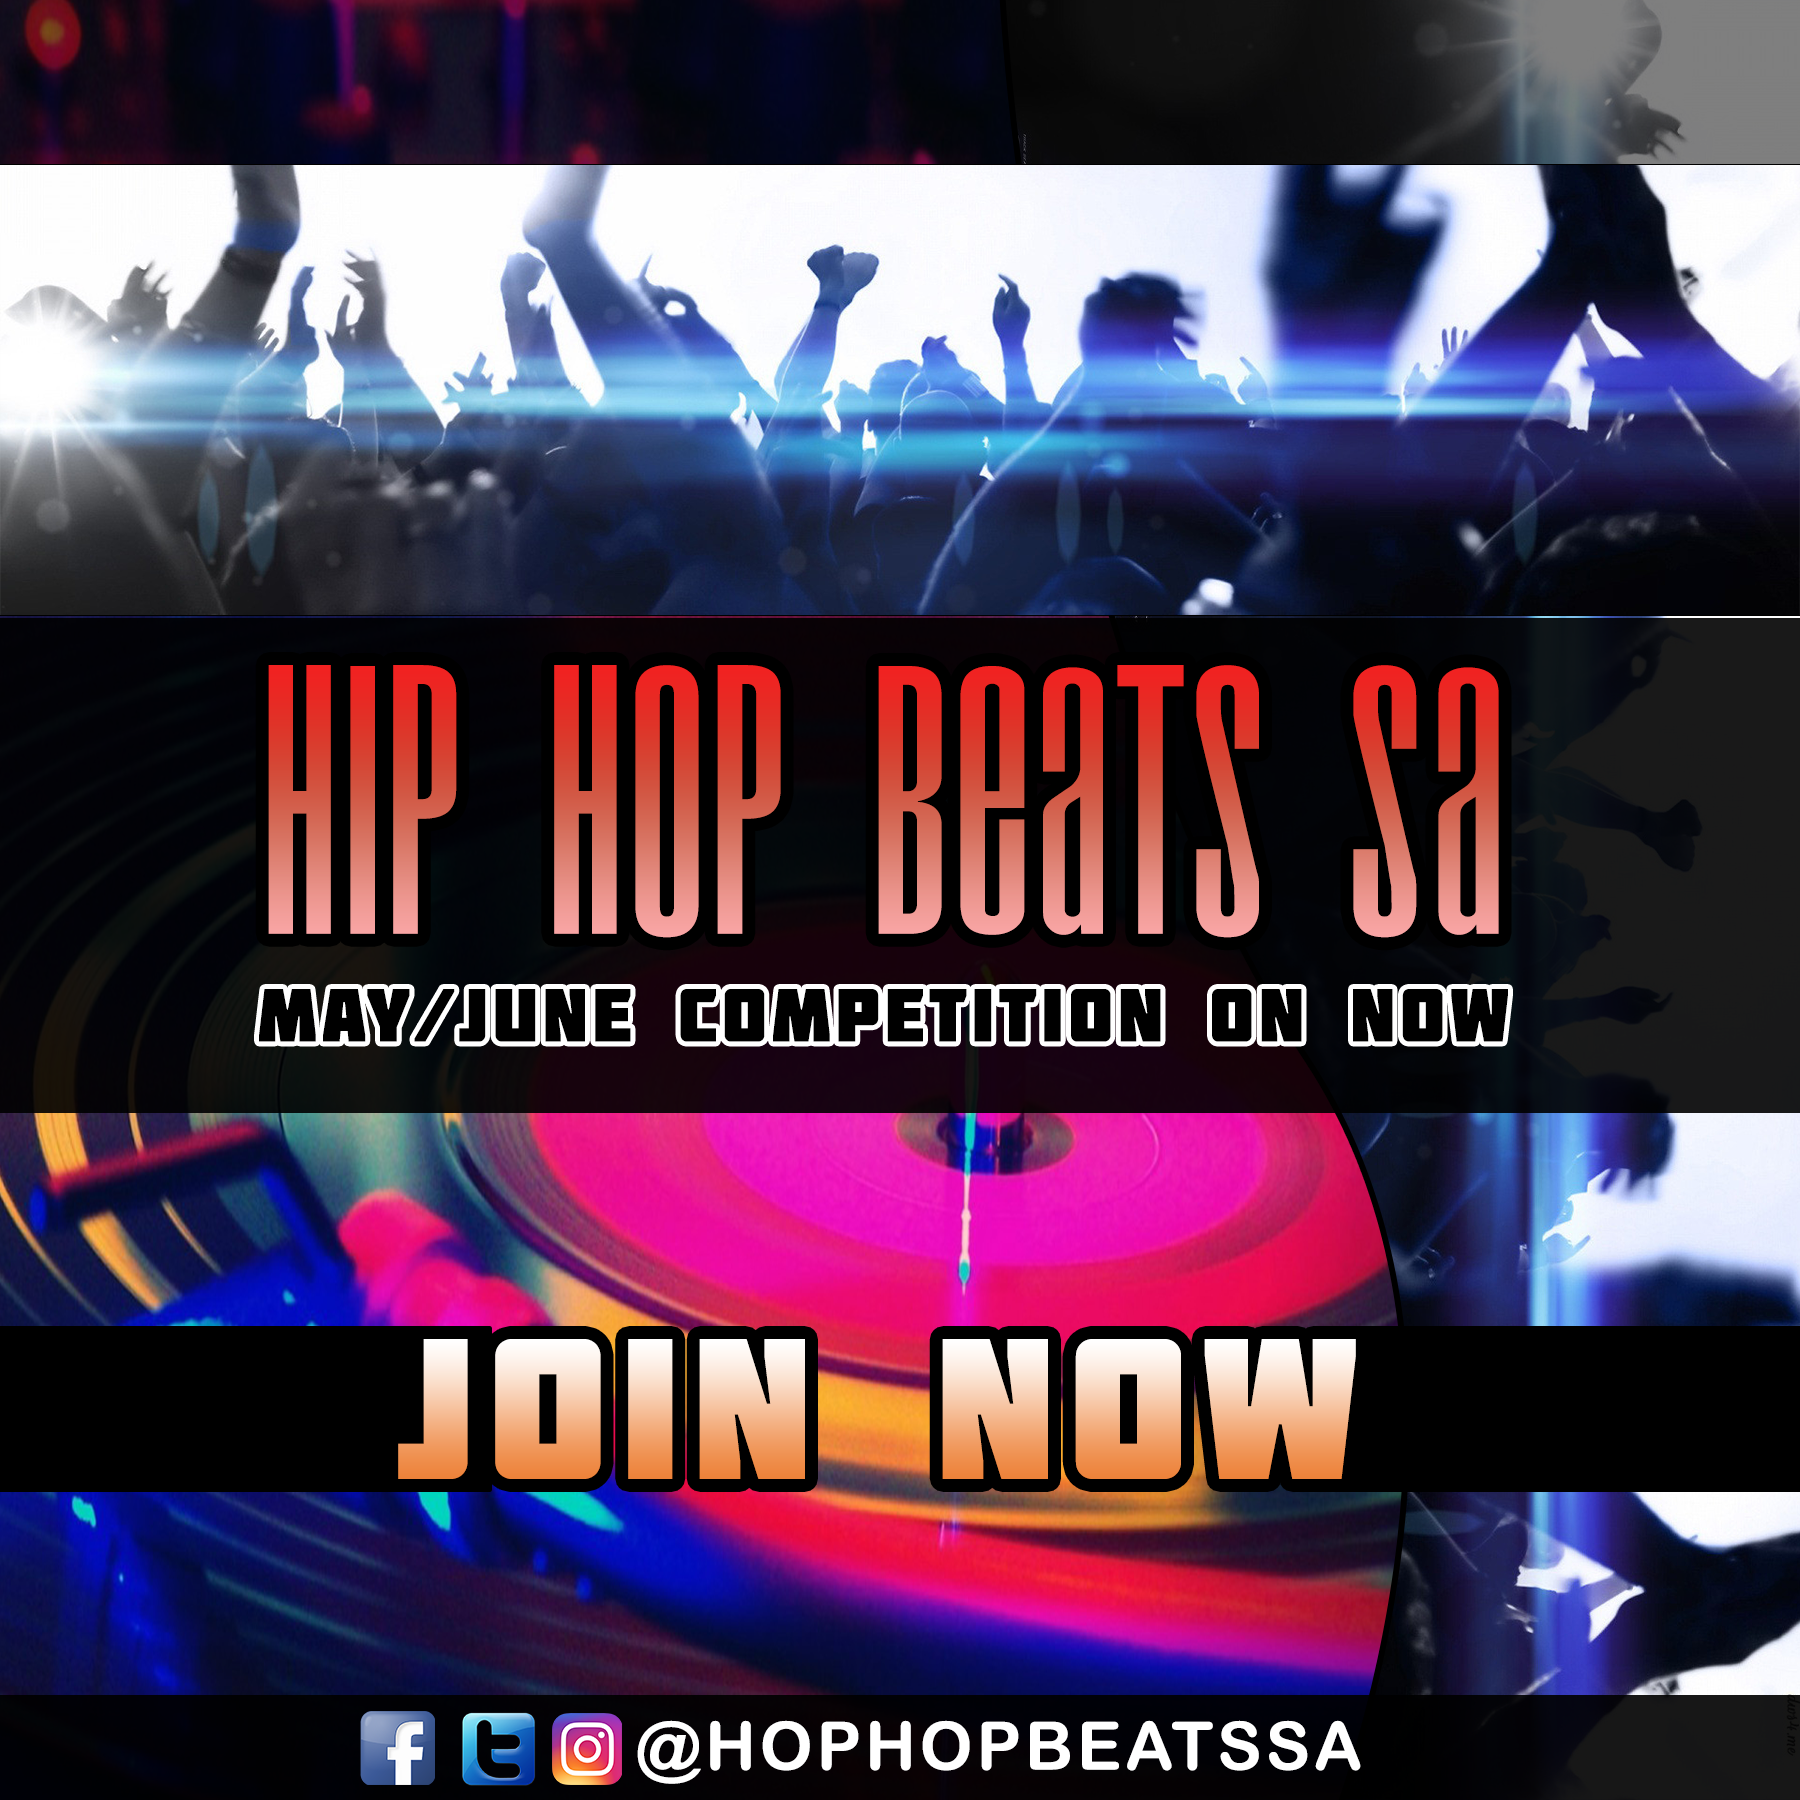 Hip Hop Beats SA May June Competition